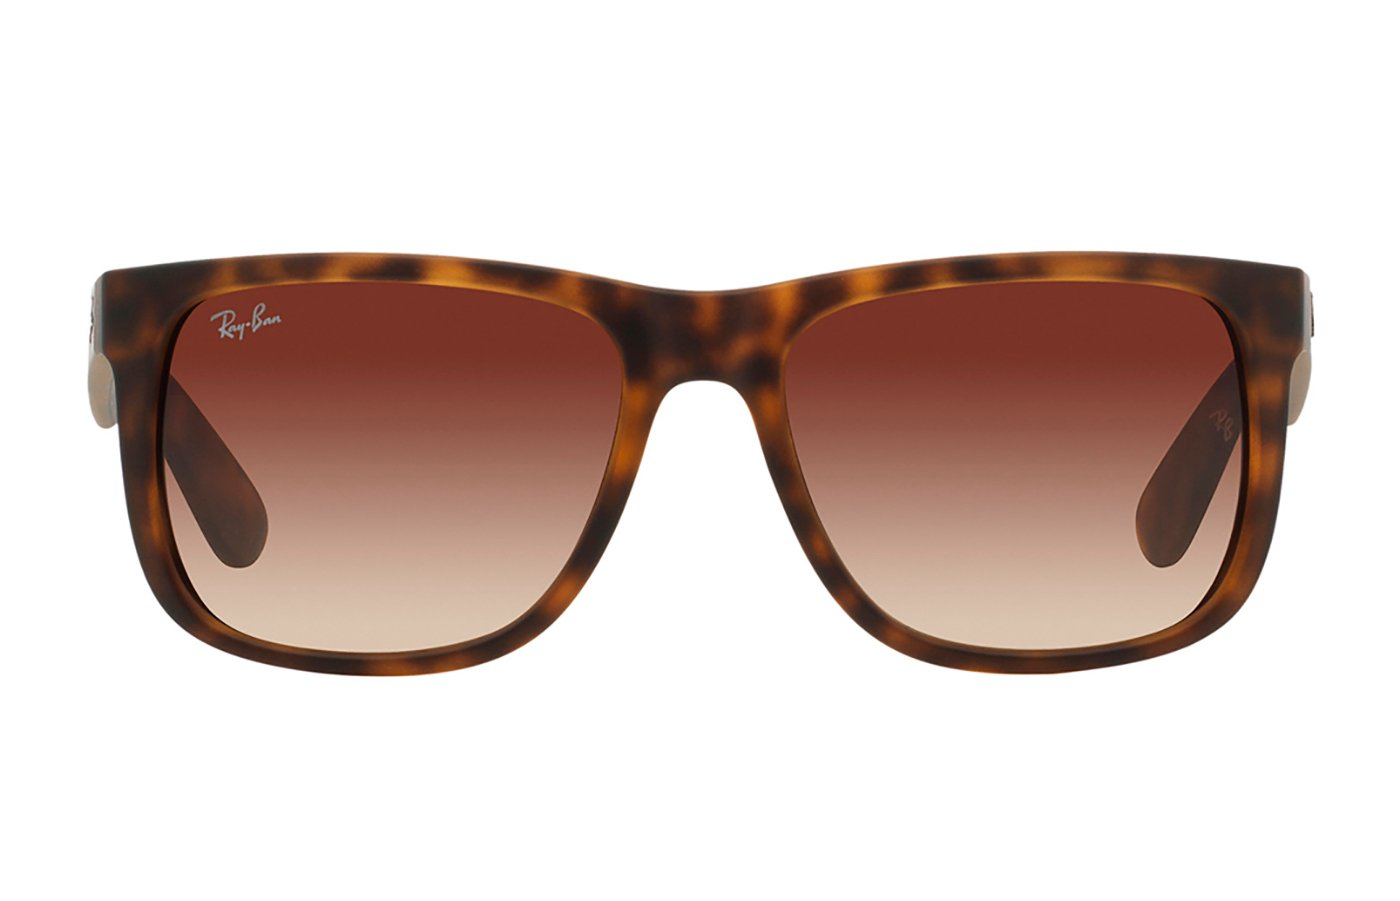 RAY-BAN JUSTIN RUBBER LIGHT HAVANA 0RB4165 51 710/13